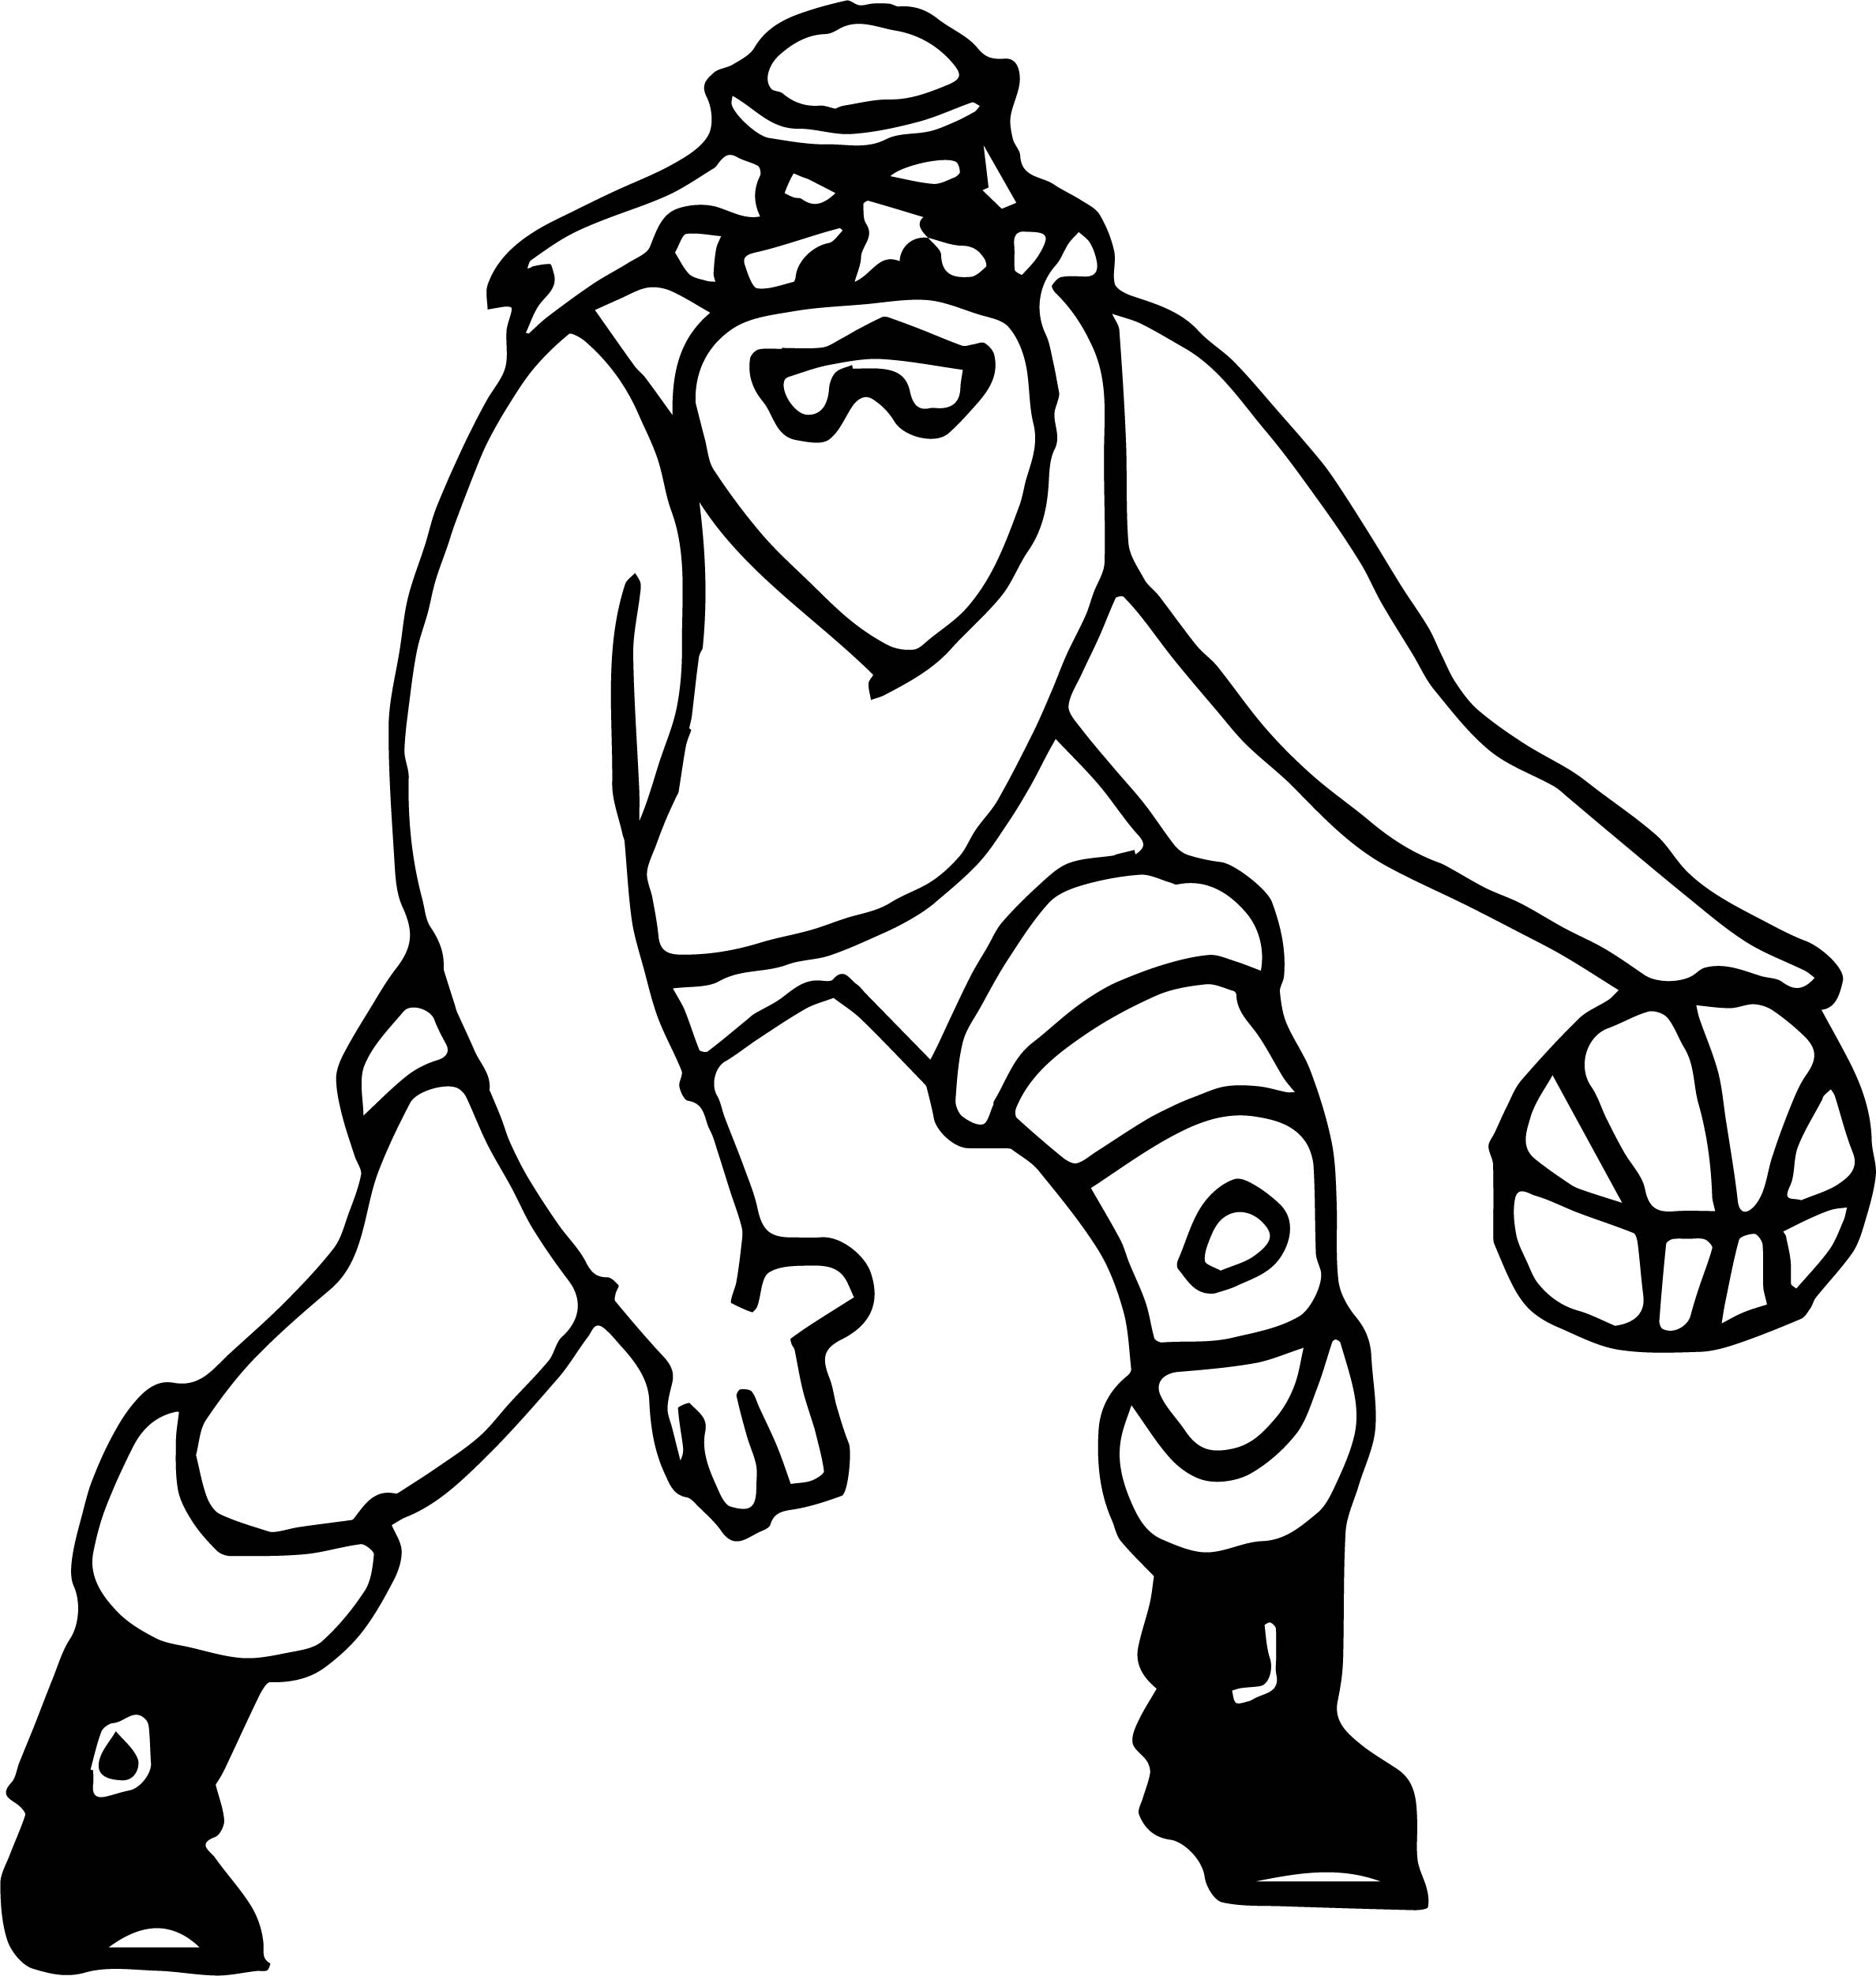 Real Basketball Coloring Pages. Santa Playing Basketball Coloring Page